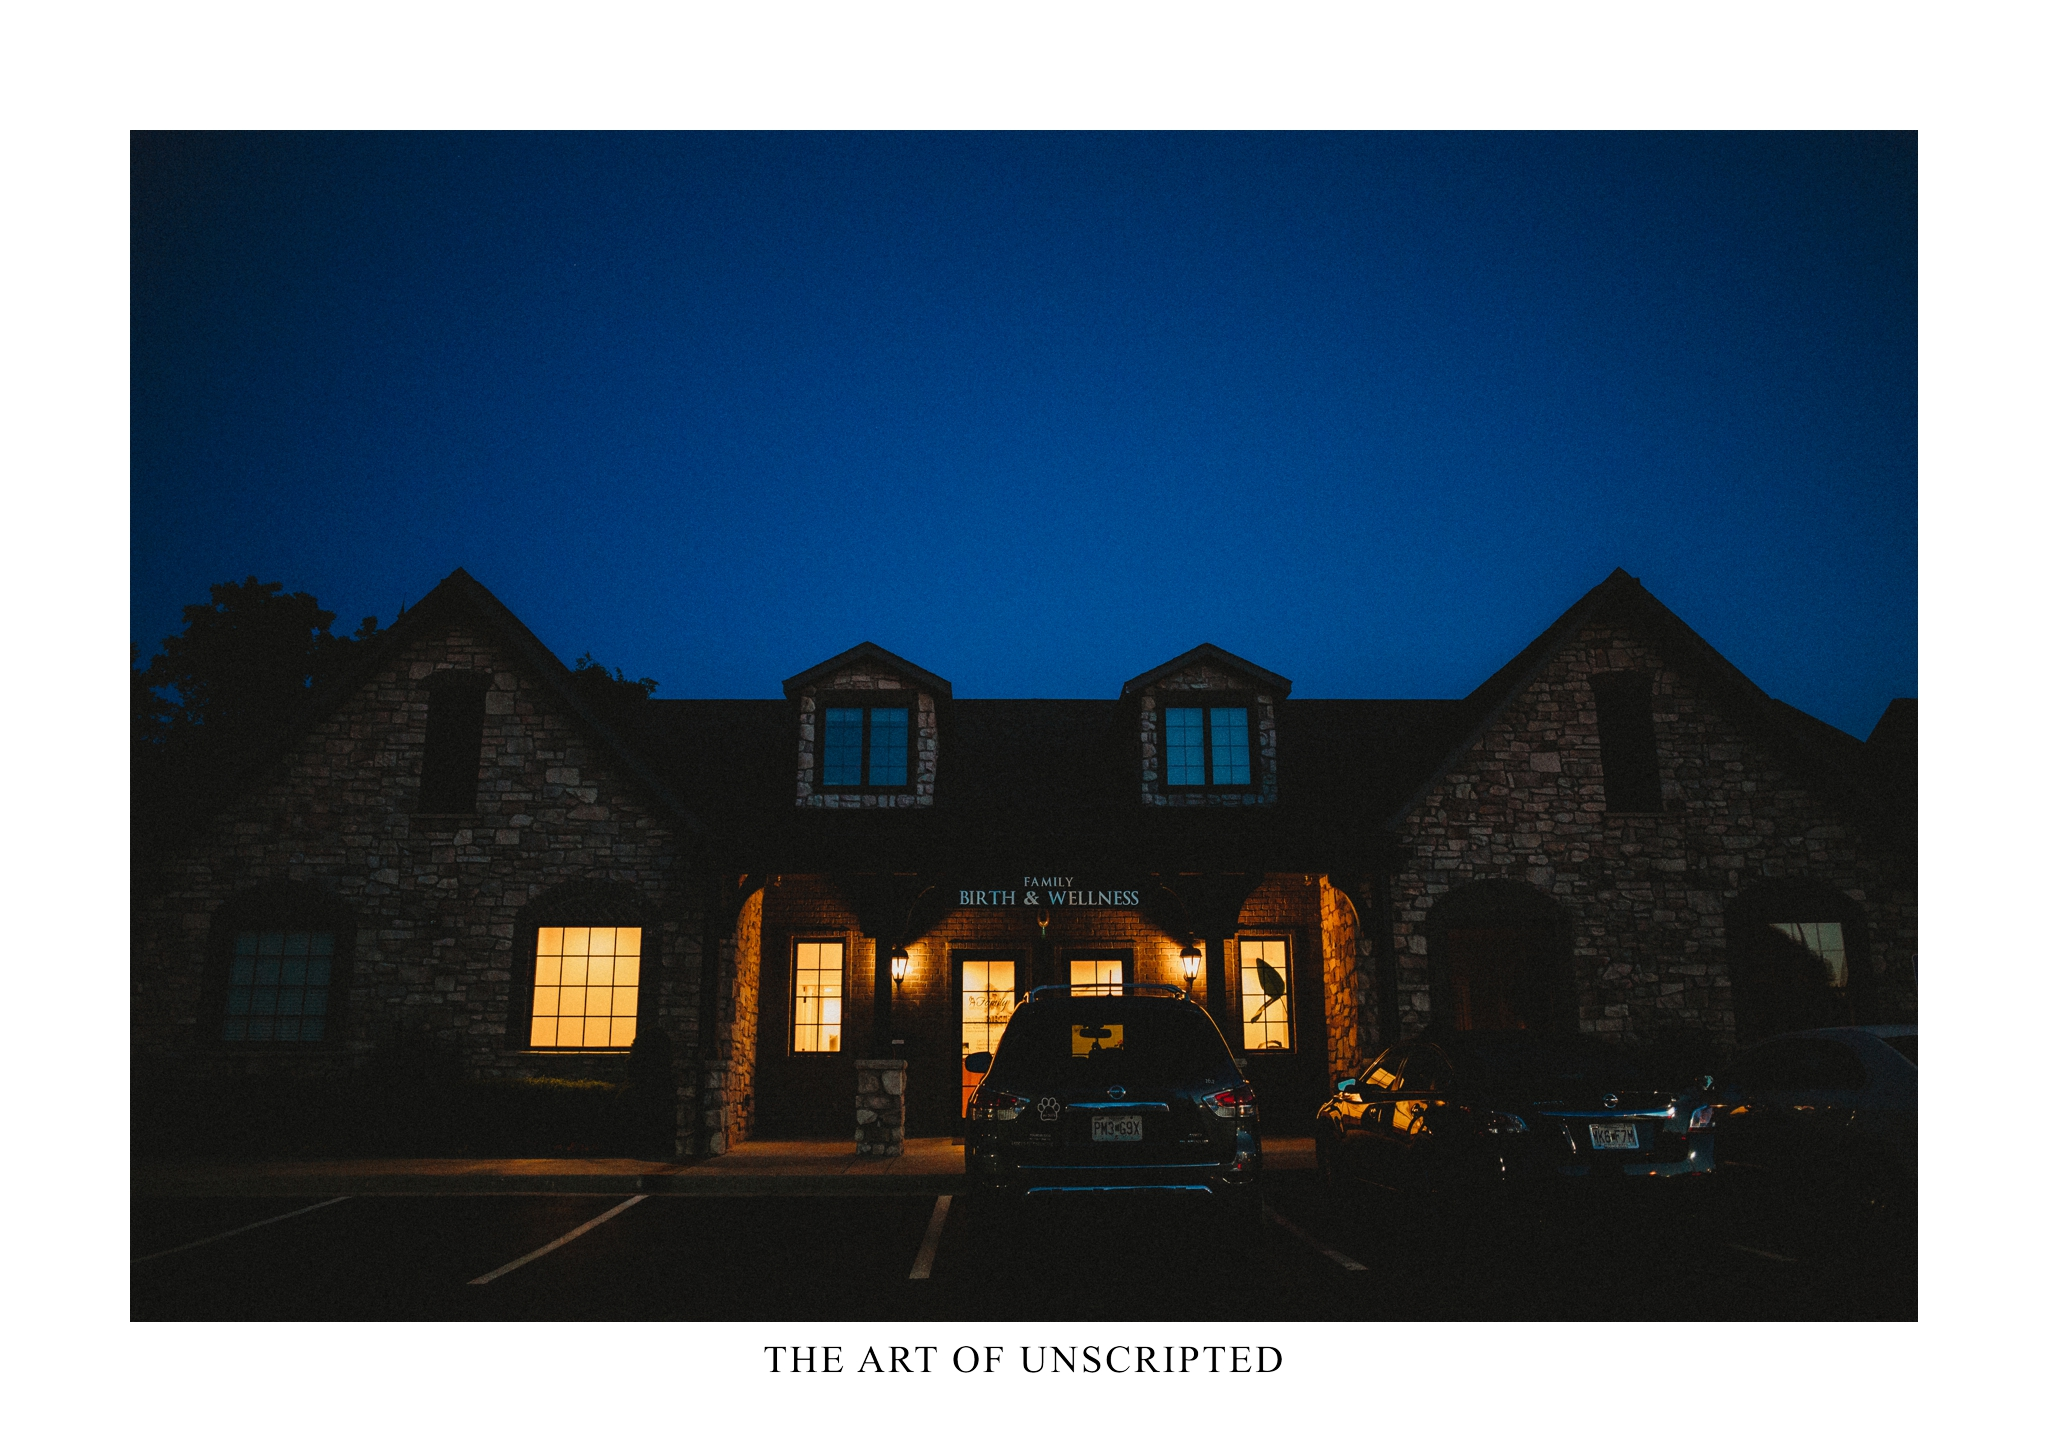 2017-06-10_051920__THE ART OF UNSCRIPTED_SPRINGFIELD MO_BIRTH PHOTOGRAPHER_ DOCUMENTARY_STORYTELLING_417_PHOTOGRAPHER